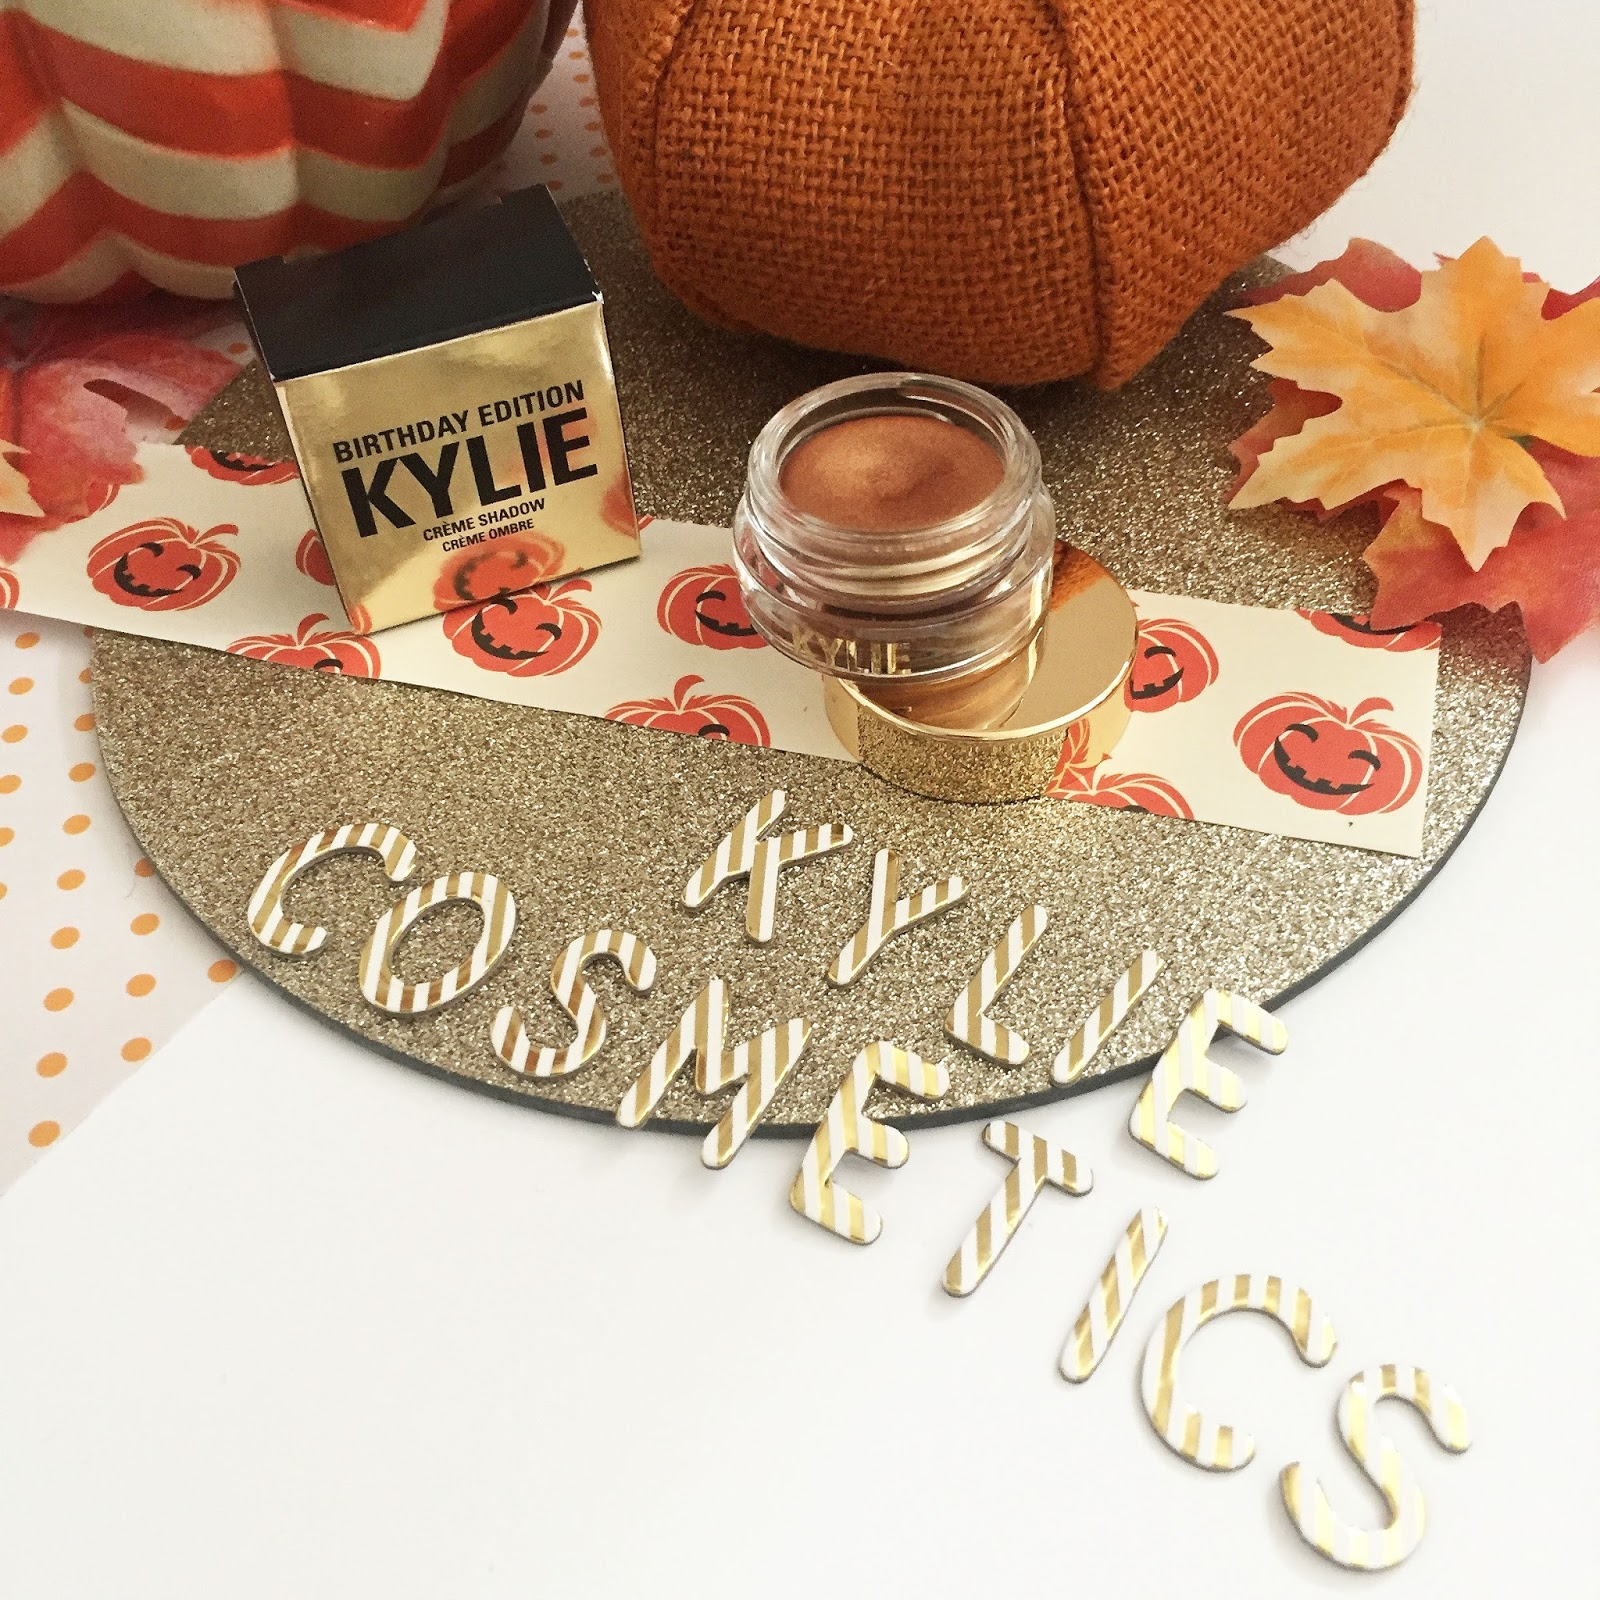 kylie cosmetics, kylie cosmetics birthday edition copper creme, kylie cosmetics uk review, kylie cosmetics review, dirty peach review, exposed review, kylie jenner make up